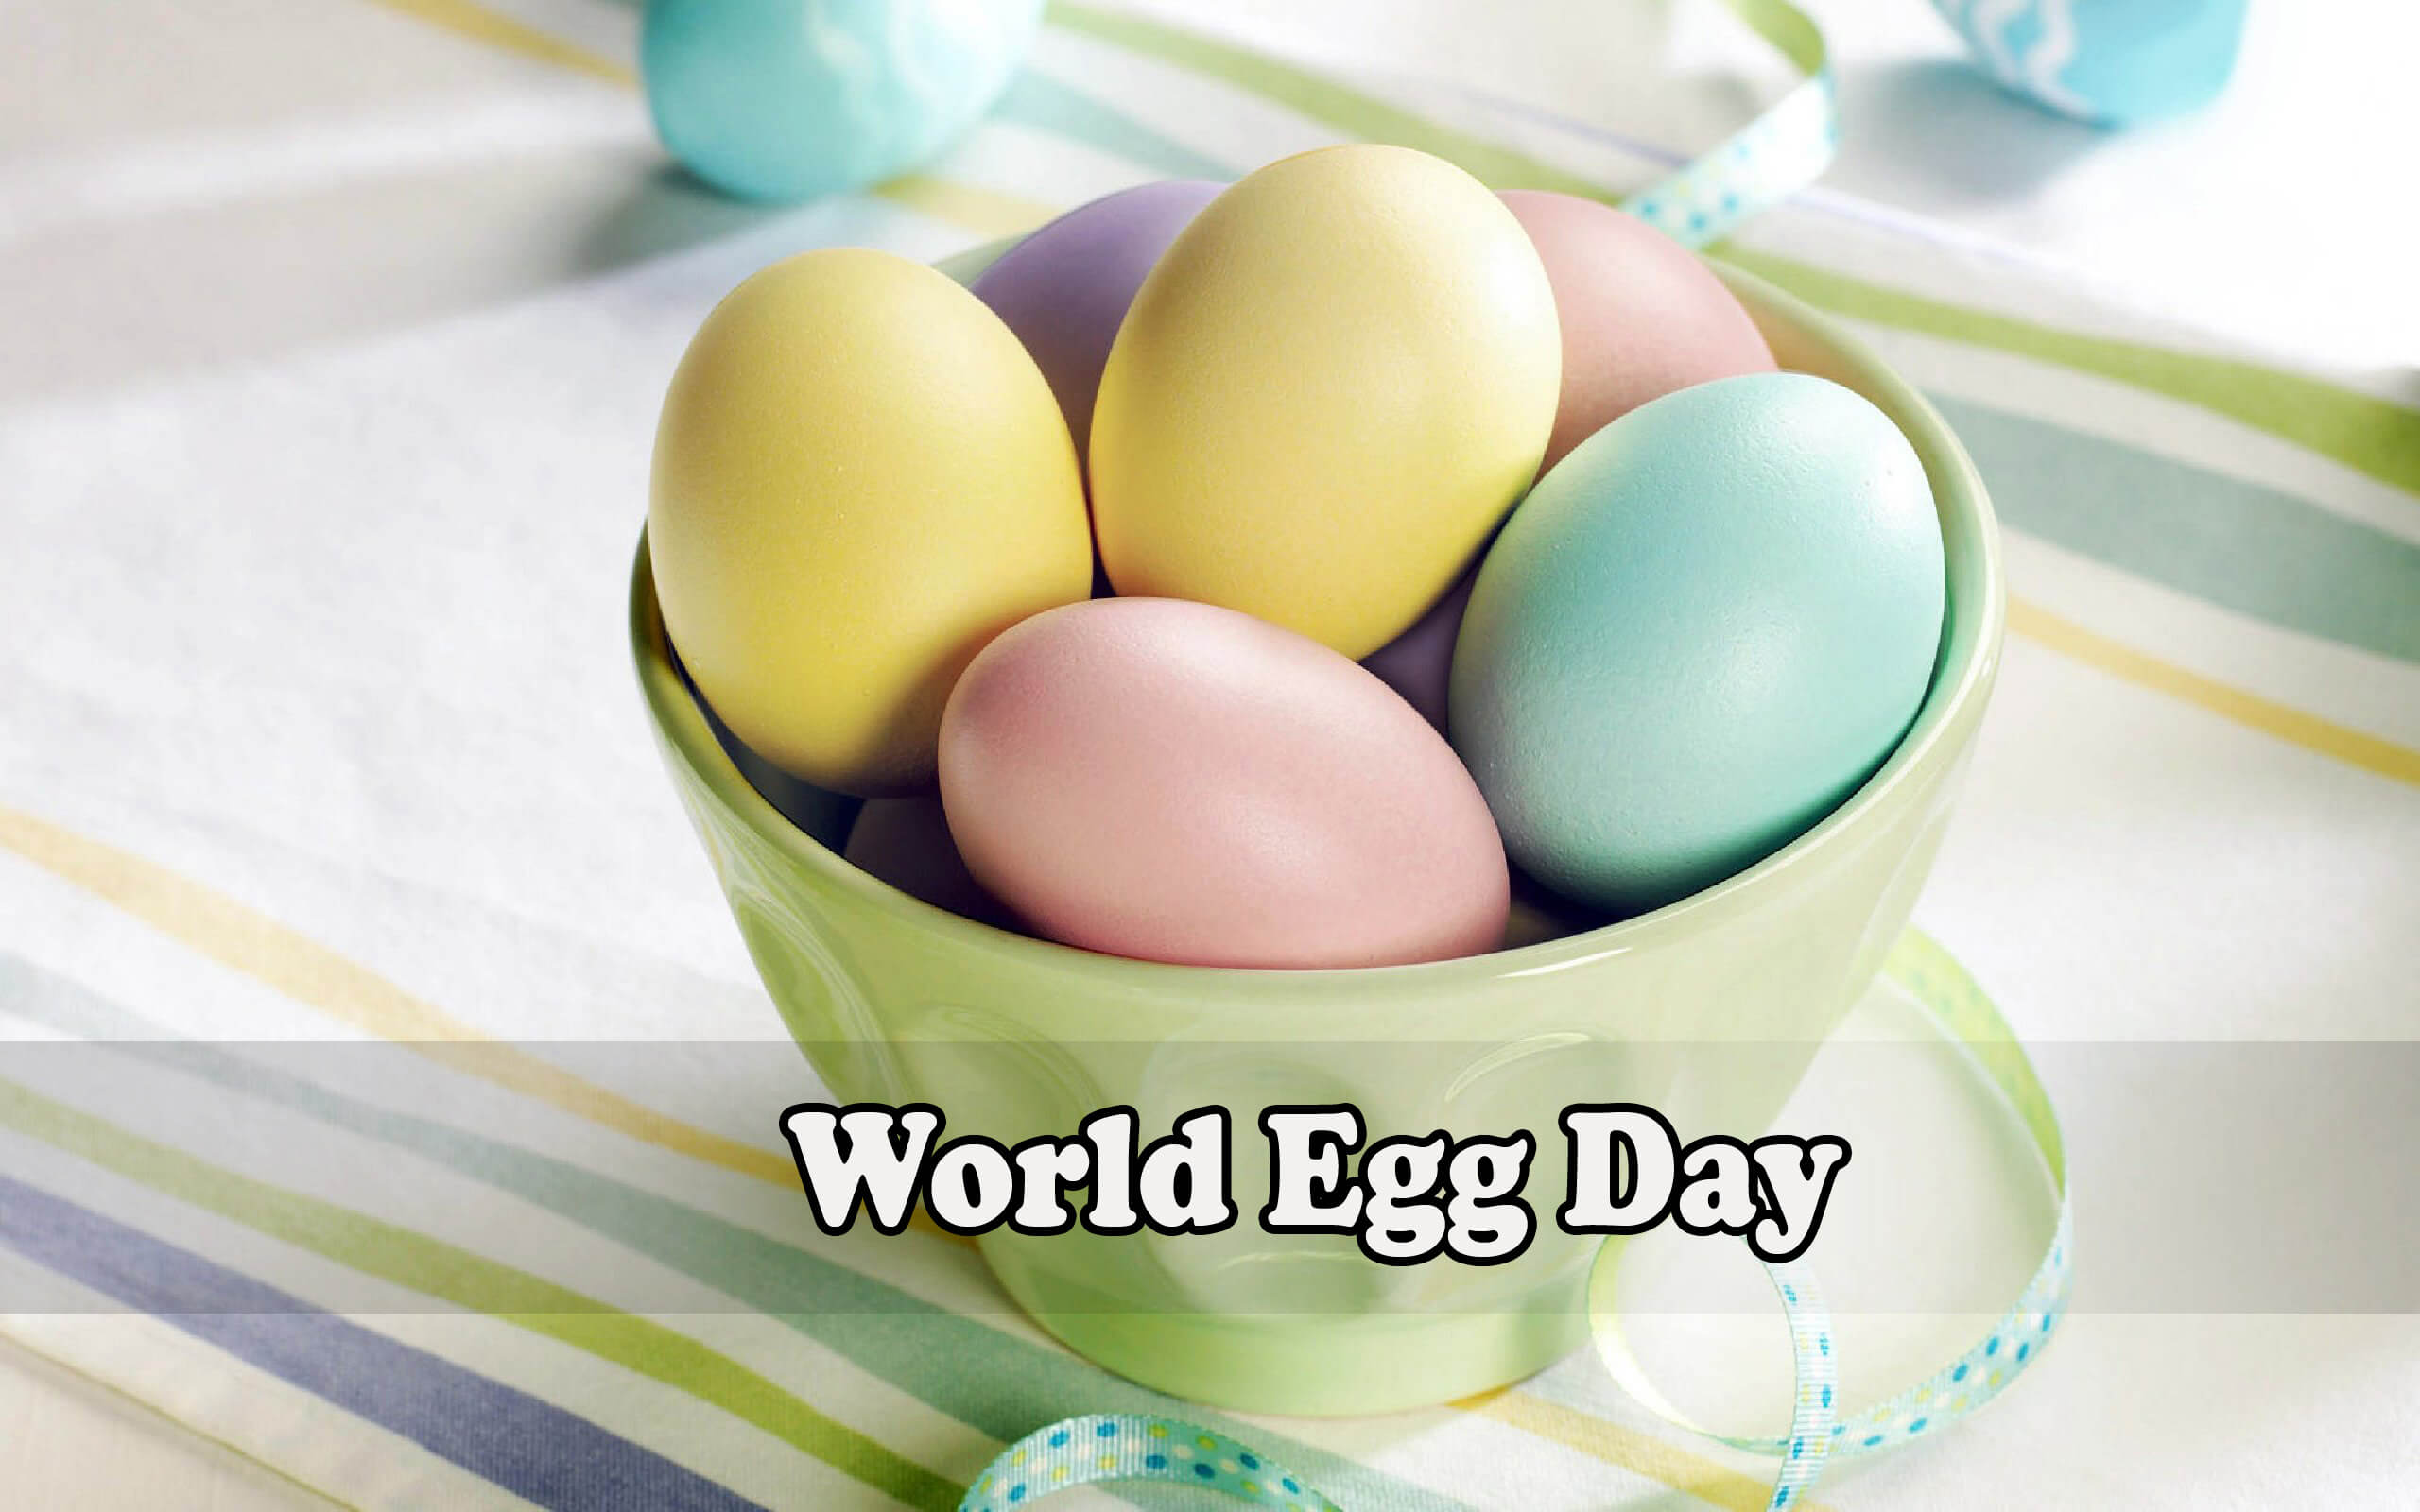 world egg day colorful eggs cup table image hd wallpaper